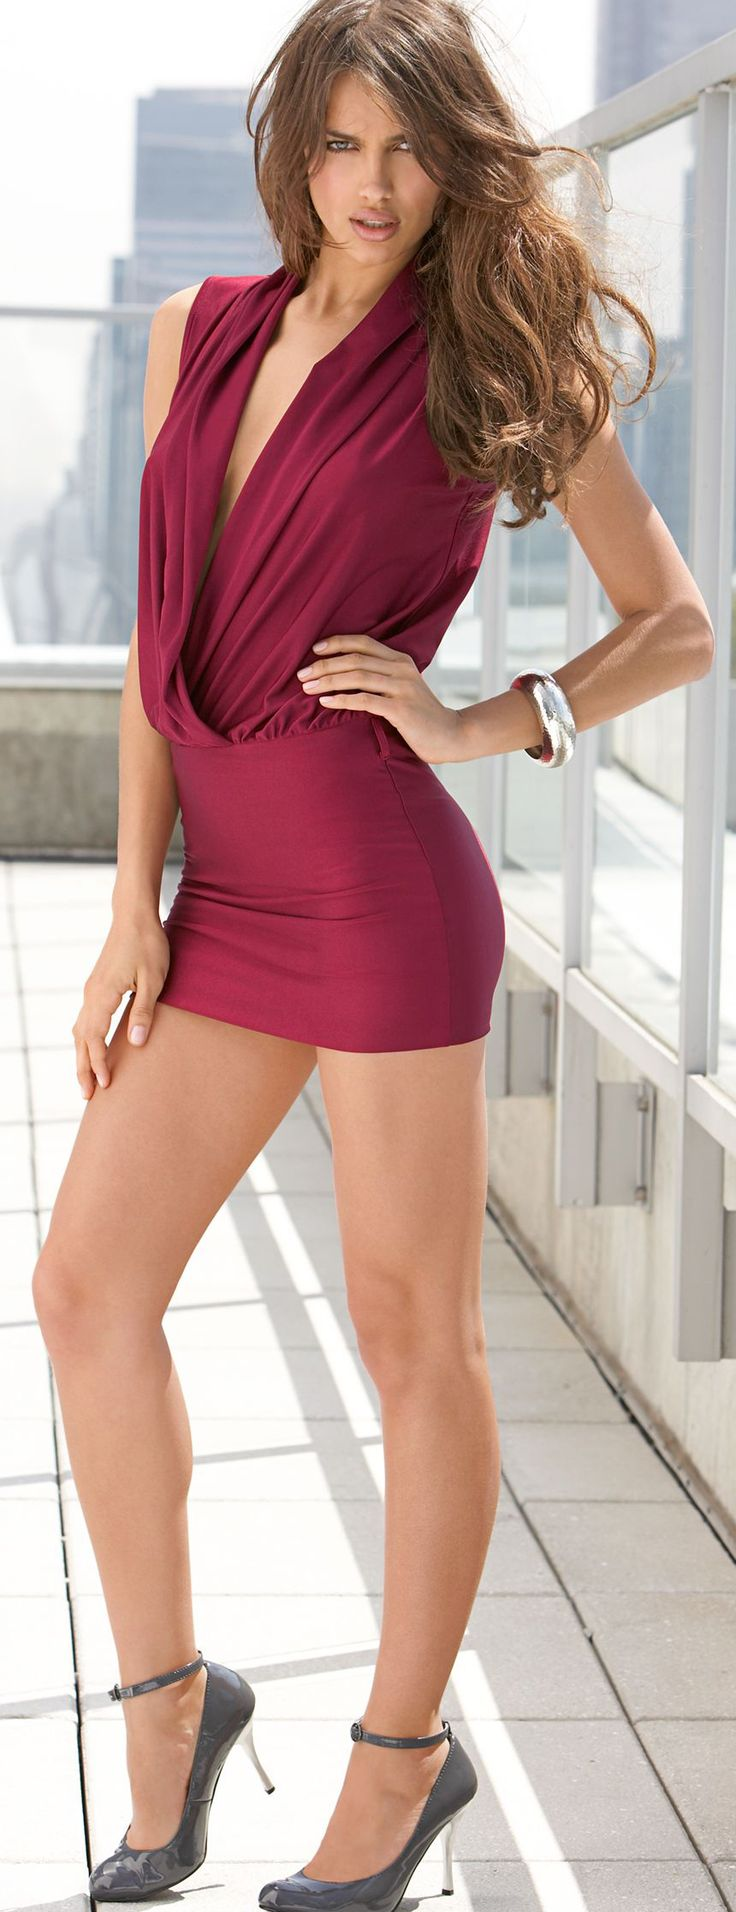 61 best images about SUPER SEXY SHORT SKIRTS on Pinterest | Sexy Models and Wifeys world